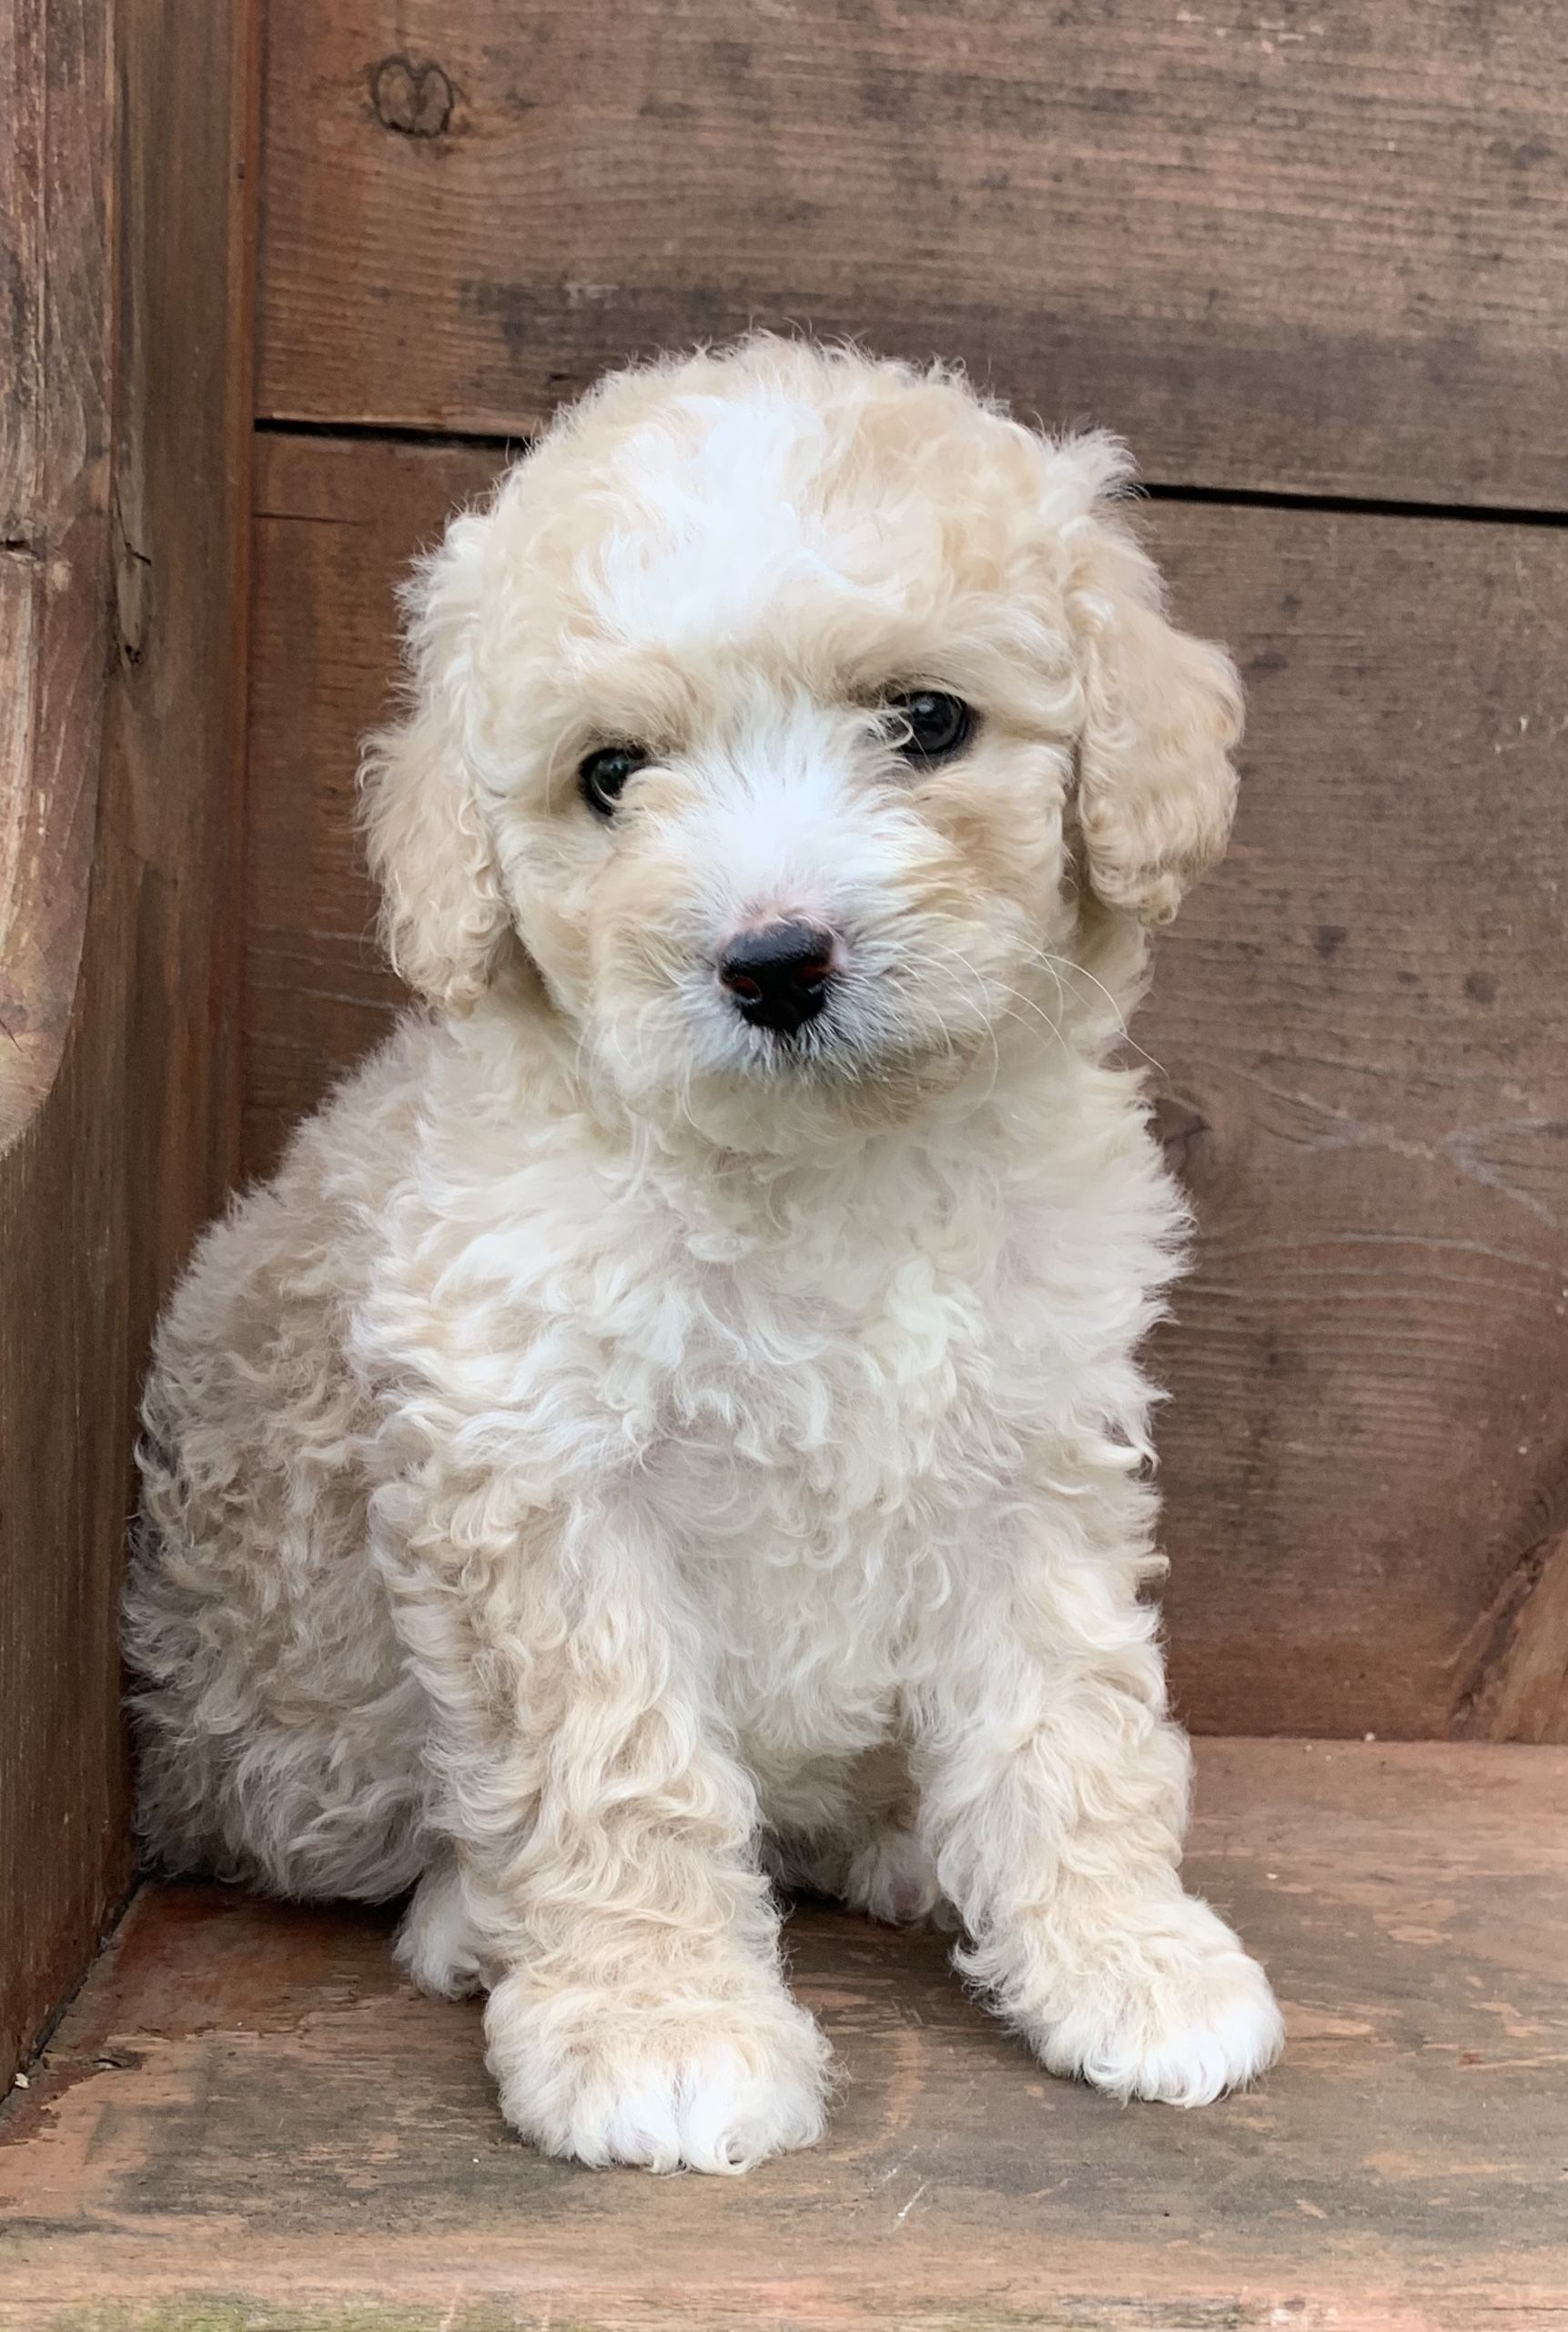 Puppies for Sale Puppies, Cavapoo puppies, Cute dogs